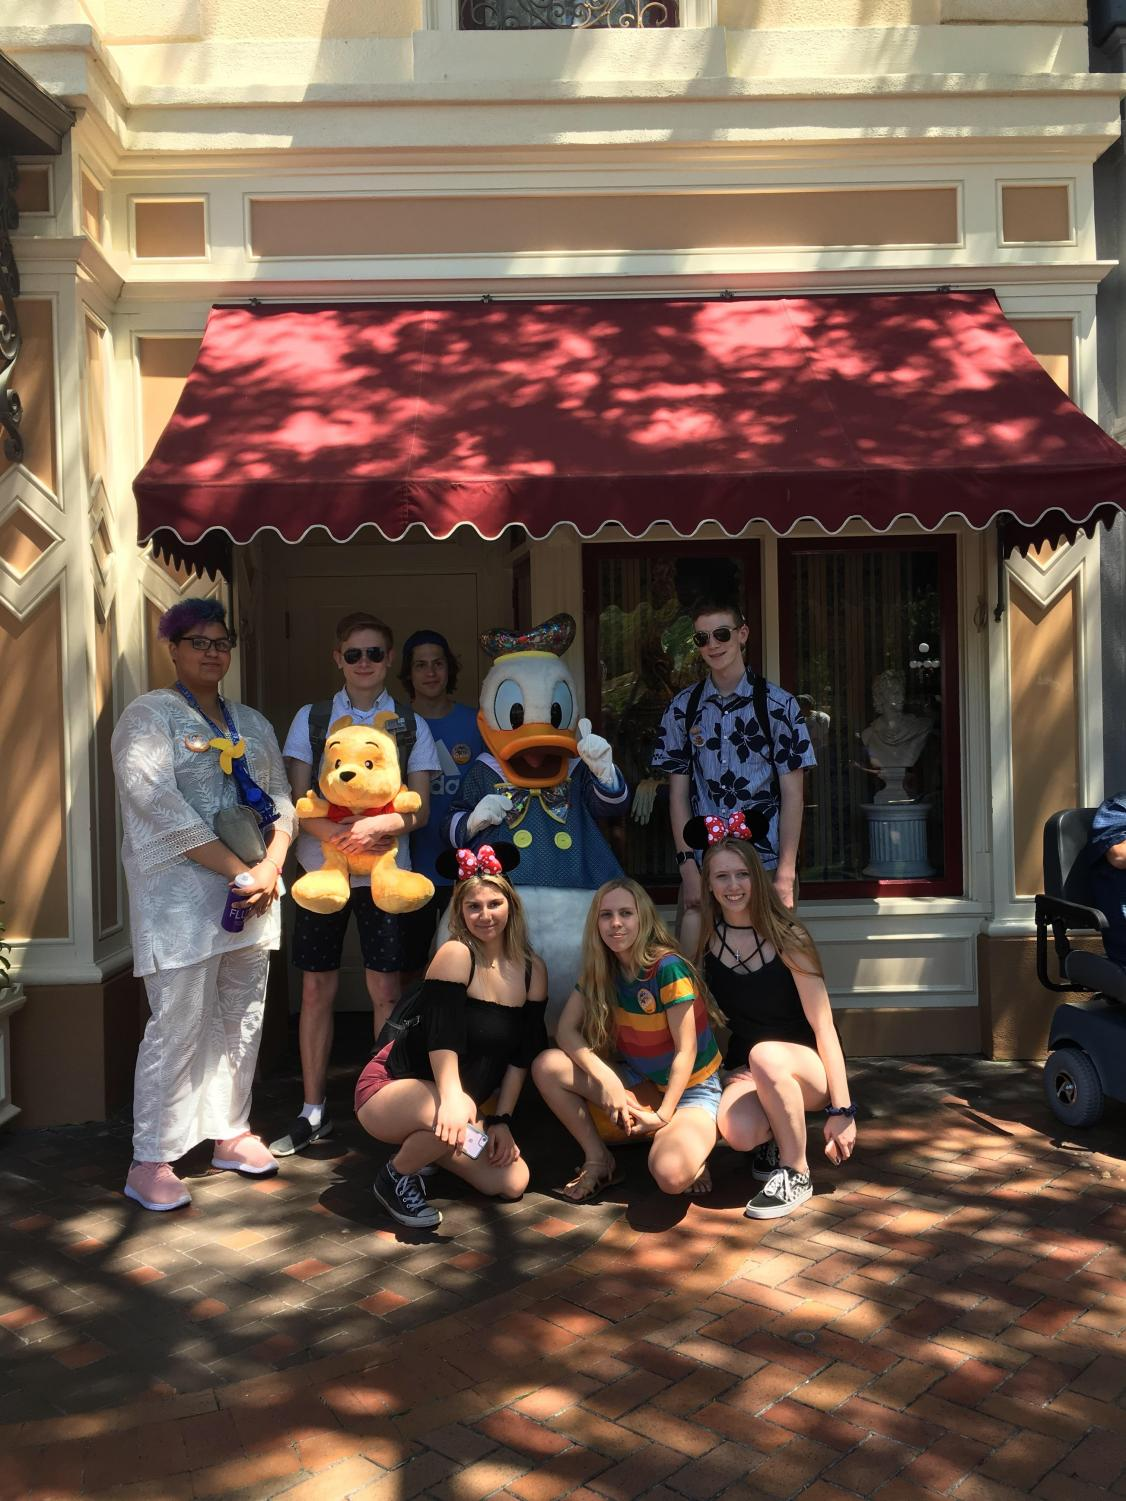 On+the+hunt+for+Disneyland+characters%2C+seven+of+the+Pony+Express+students+take+a+photo+with+Donald+Duck%2C+featuring+Winnie+the+Pooh.